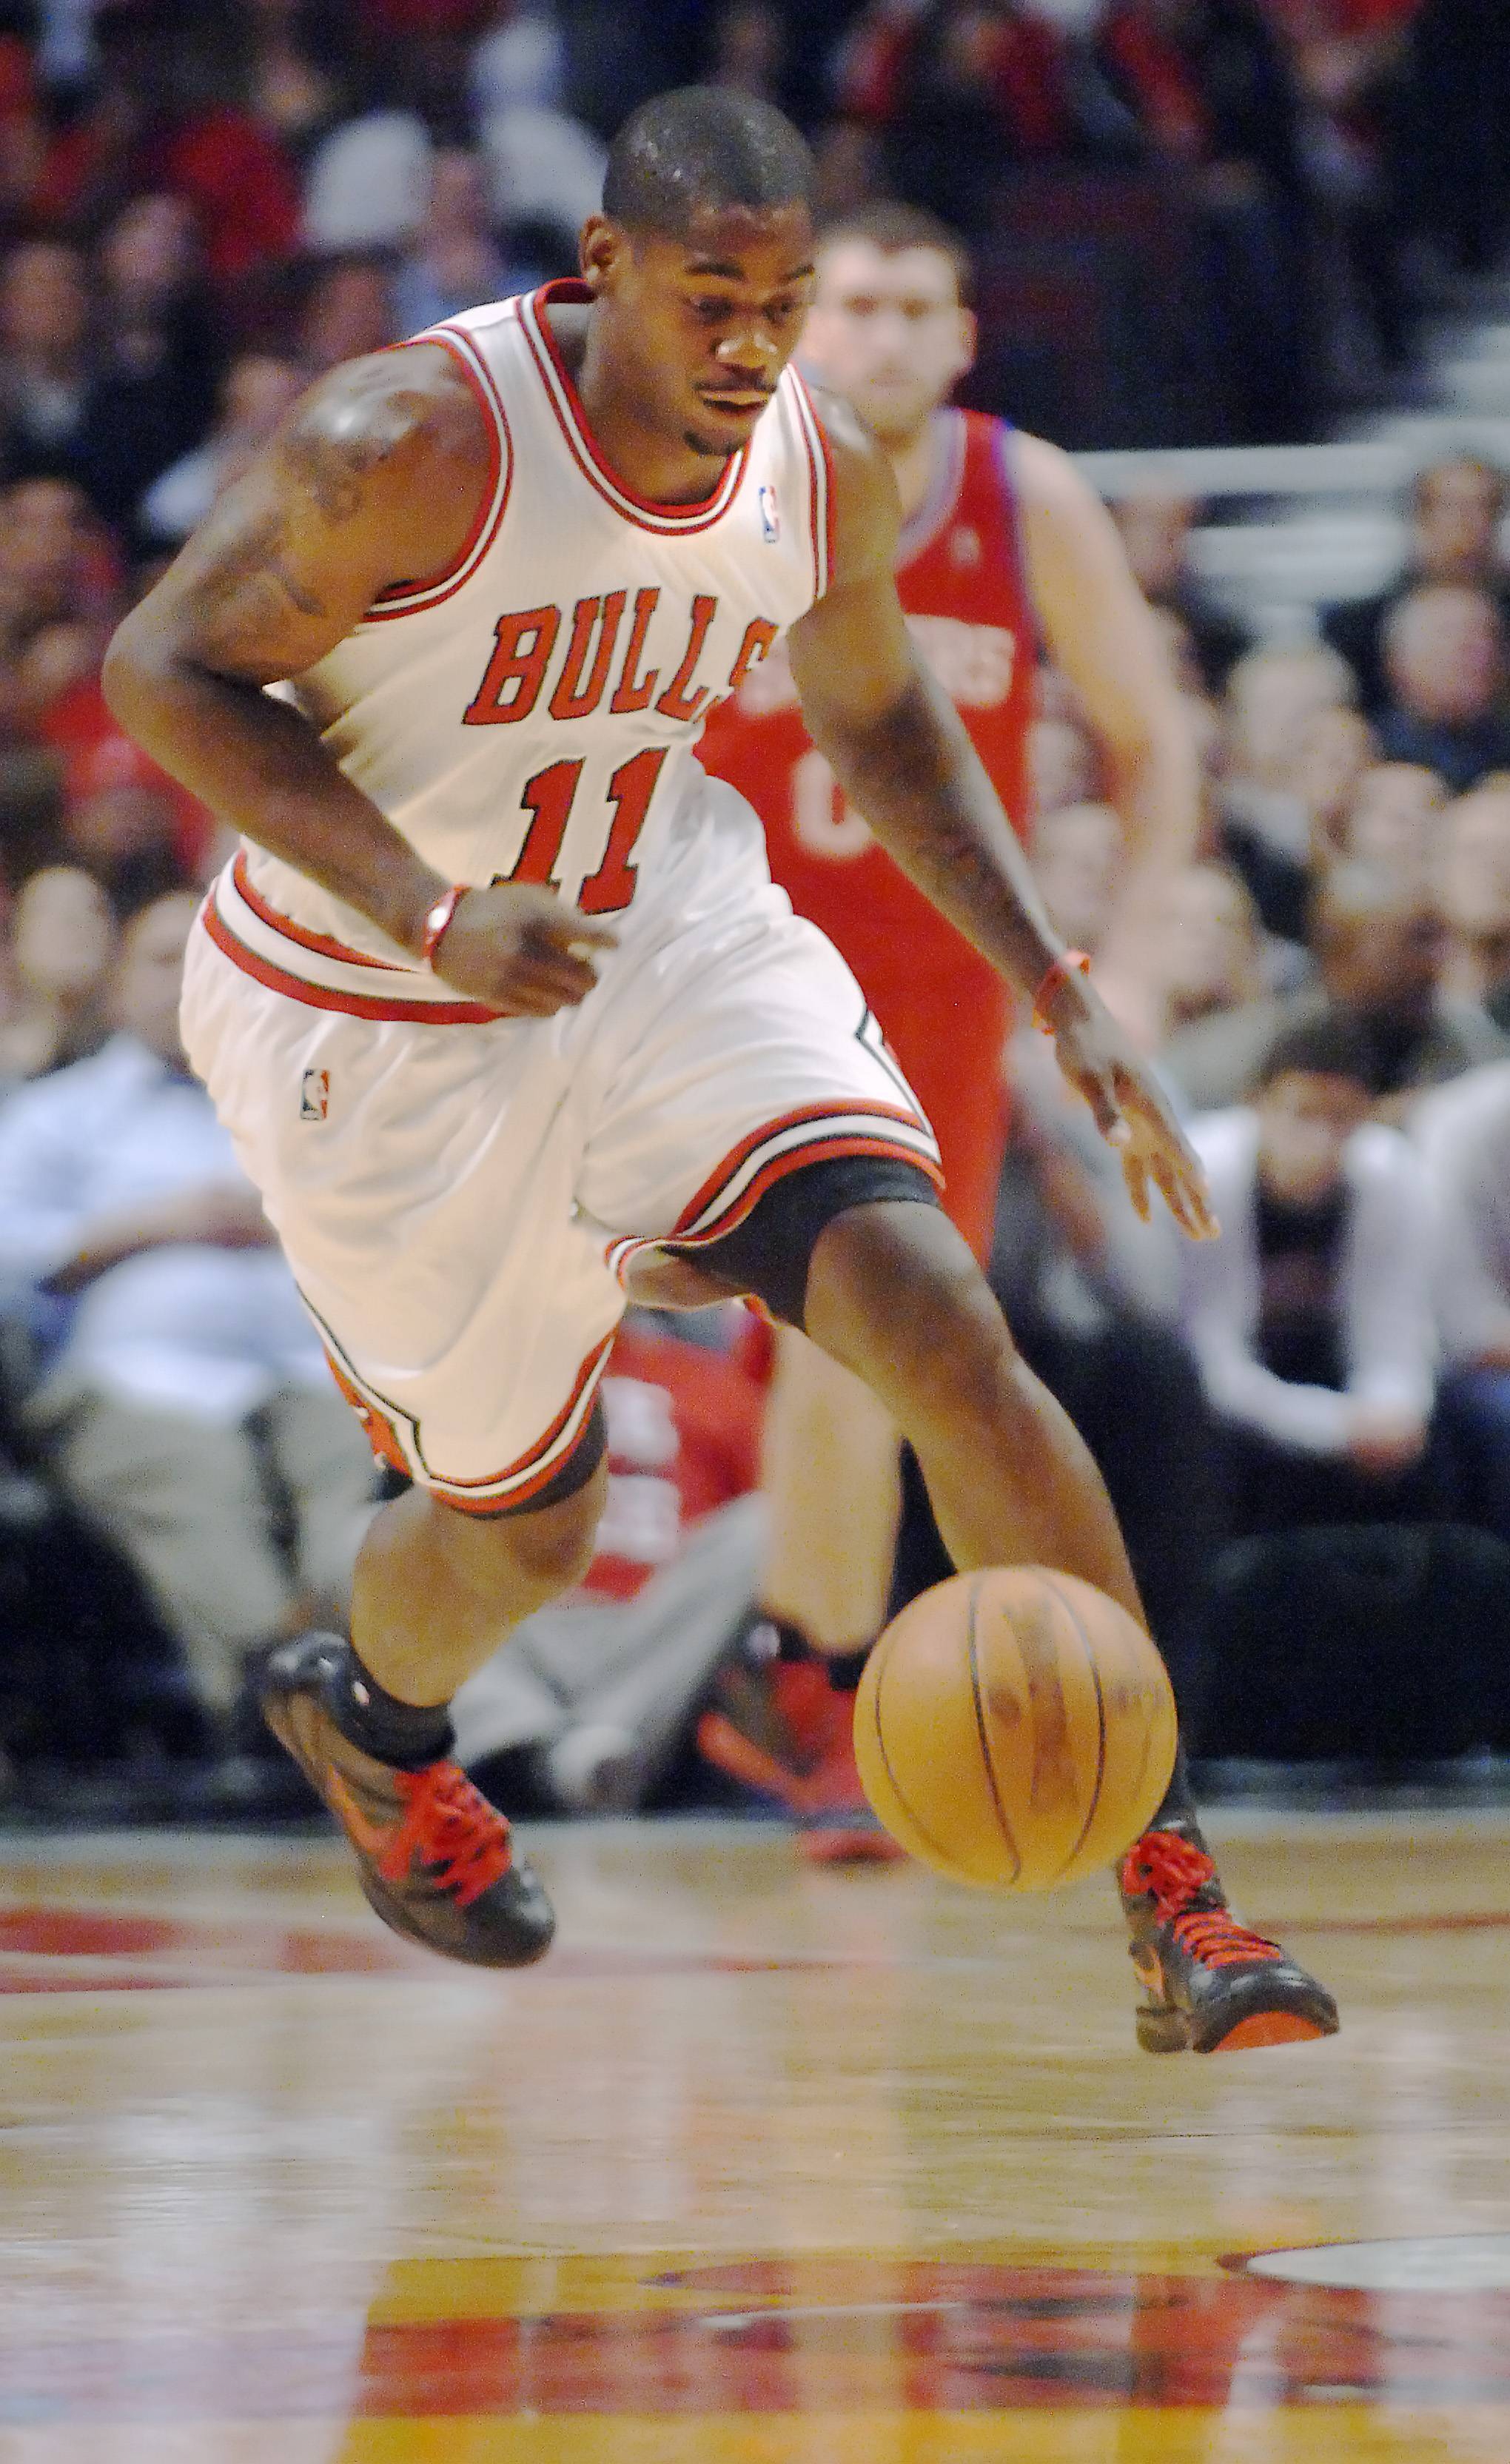 @Caption credit:John Starks/jstarks@dailyherald.com/file The Chicago Bulls have signed freeagent swingman Ronnie Brewer for the rest of the 2014 season. Brewer played with the Bulls from 2010-12. He was released by Houston earlier this year.